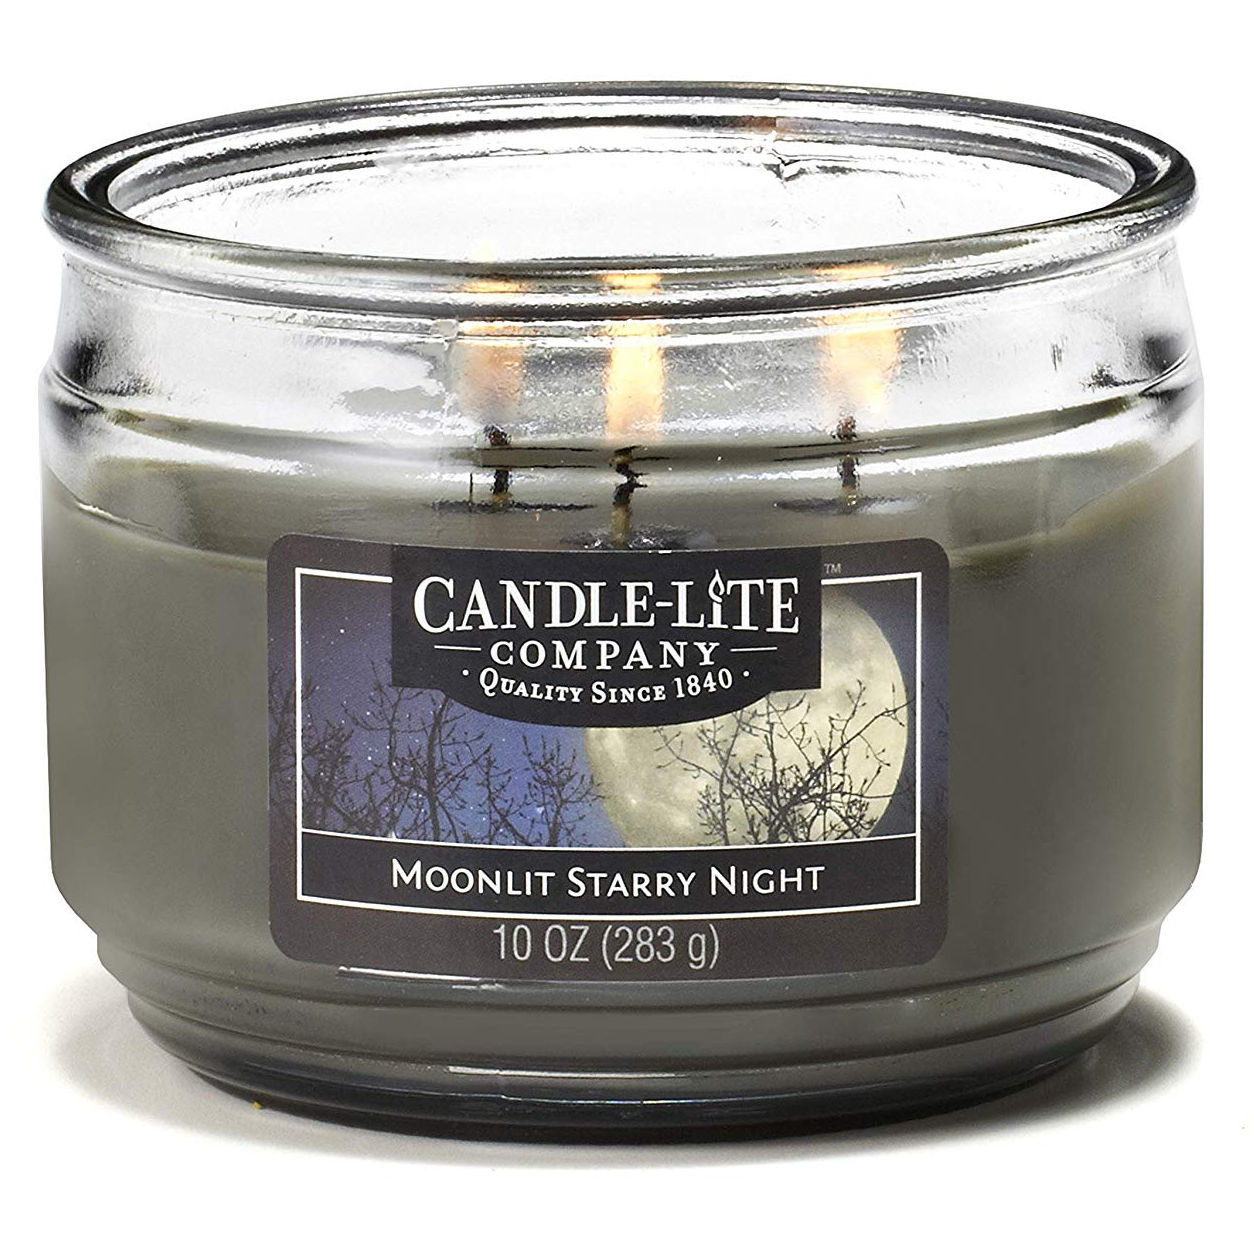 Candle-Lite kvapioji žvakė Moonlit Starry Night, 283 g